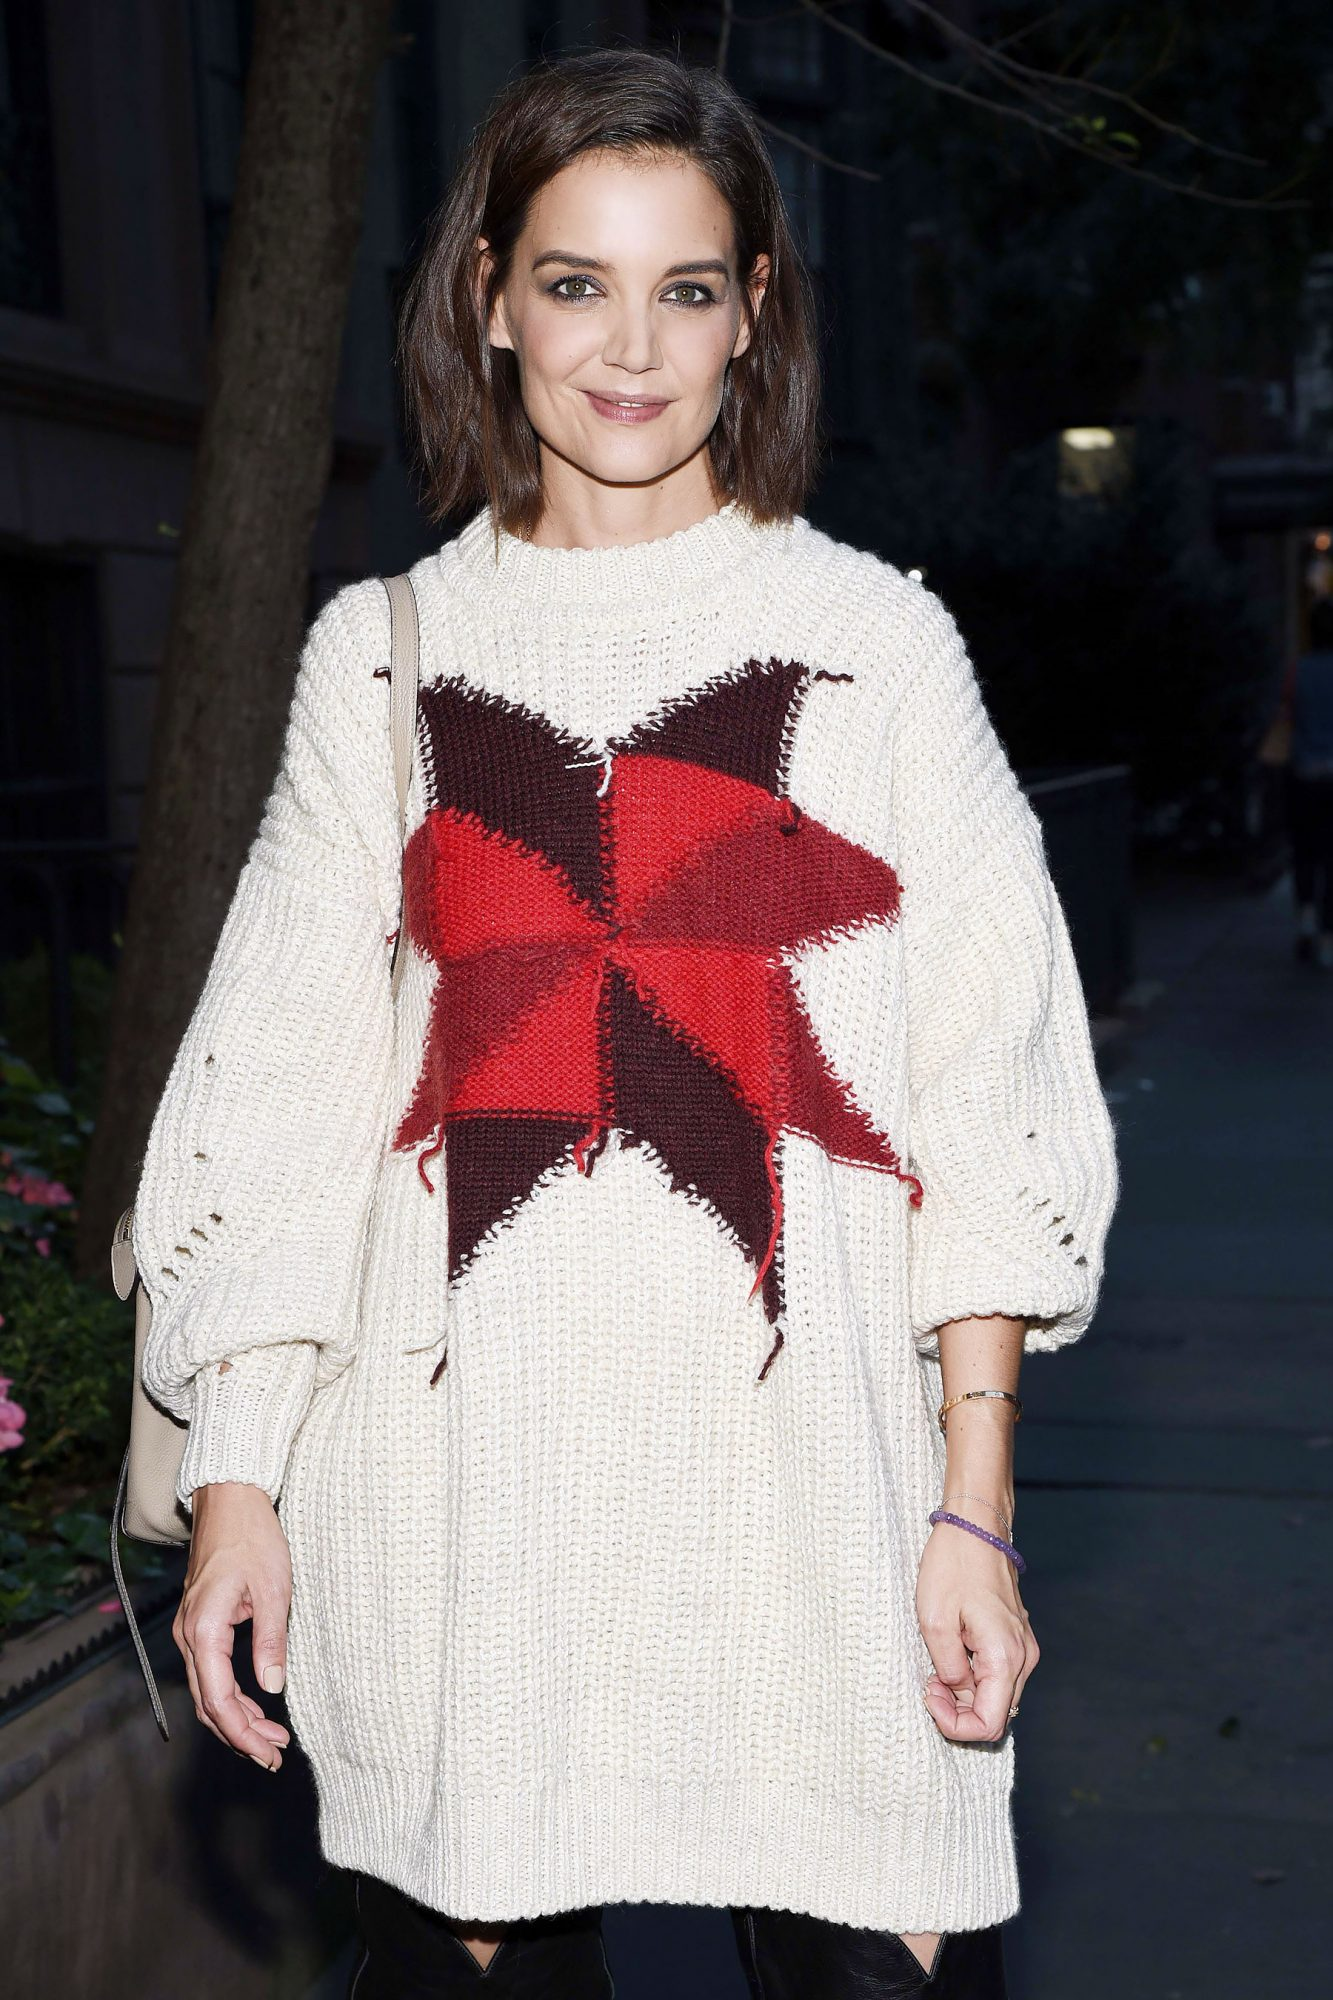 Katie Holmes Arriving to a Blue Diamond Almonds Event